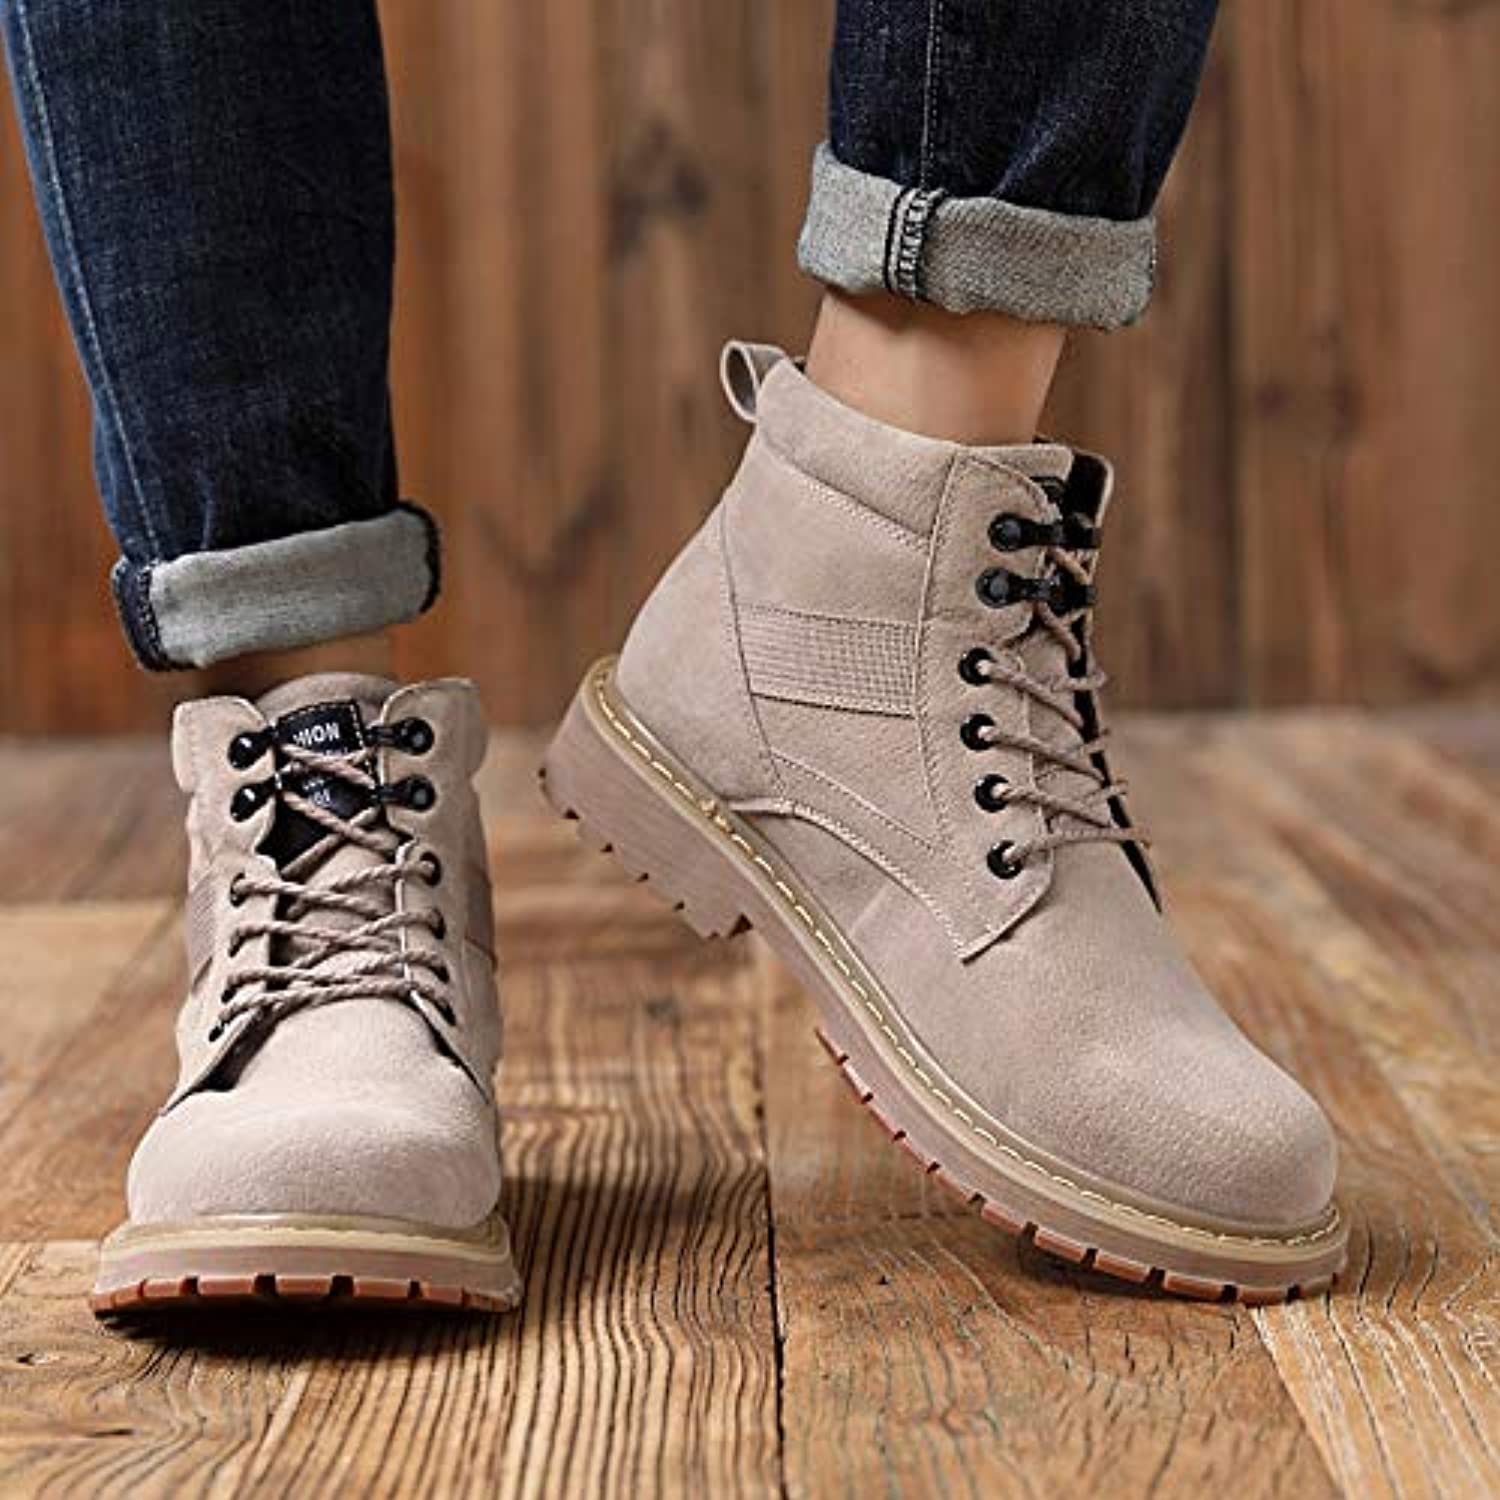 LOVDRAM Boots Men's Martin Boots Men'S Pu Snow Boots Retro Desert Boots Wild High shoes shoes Boots Autumn